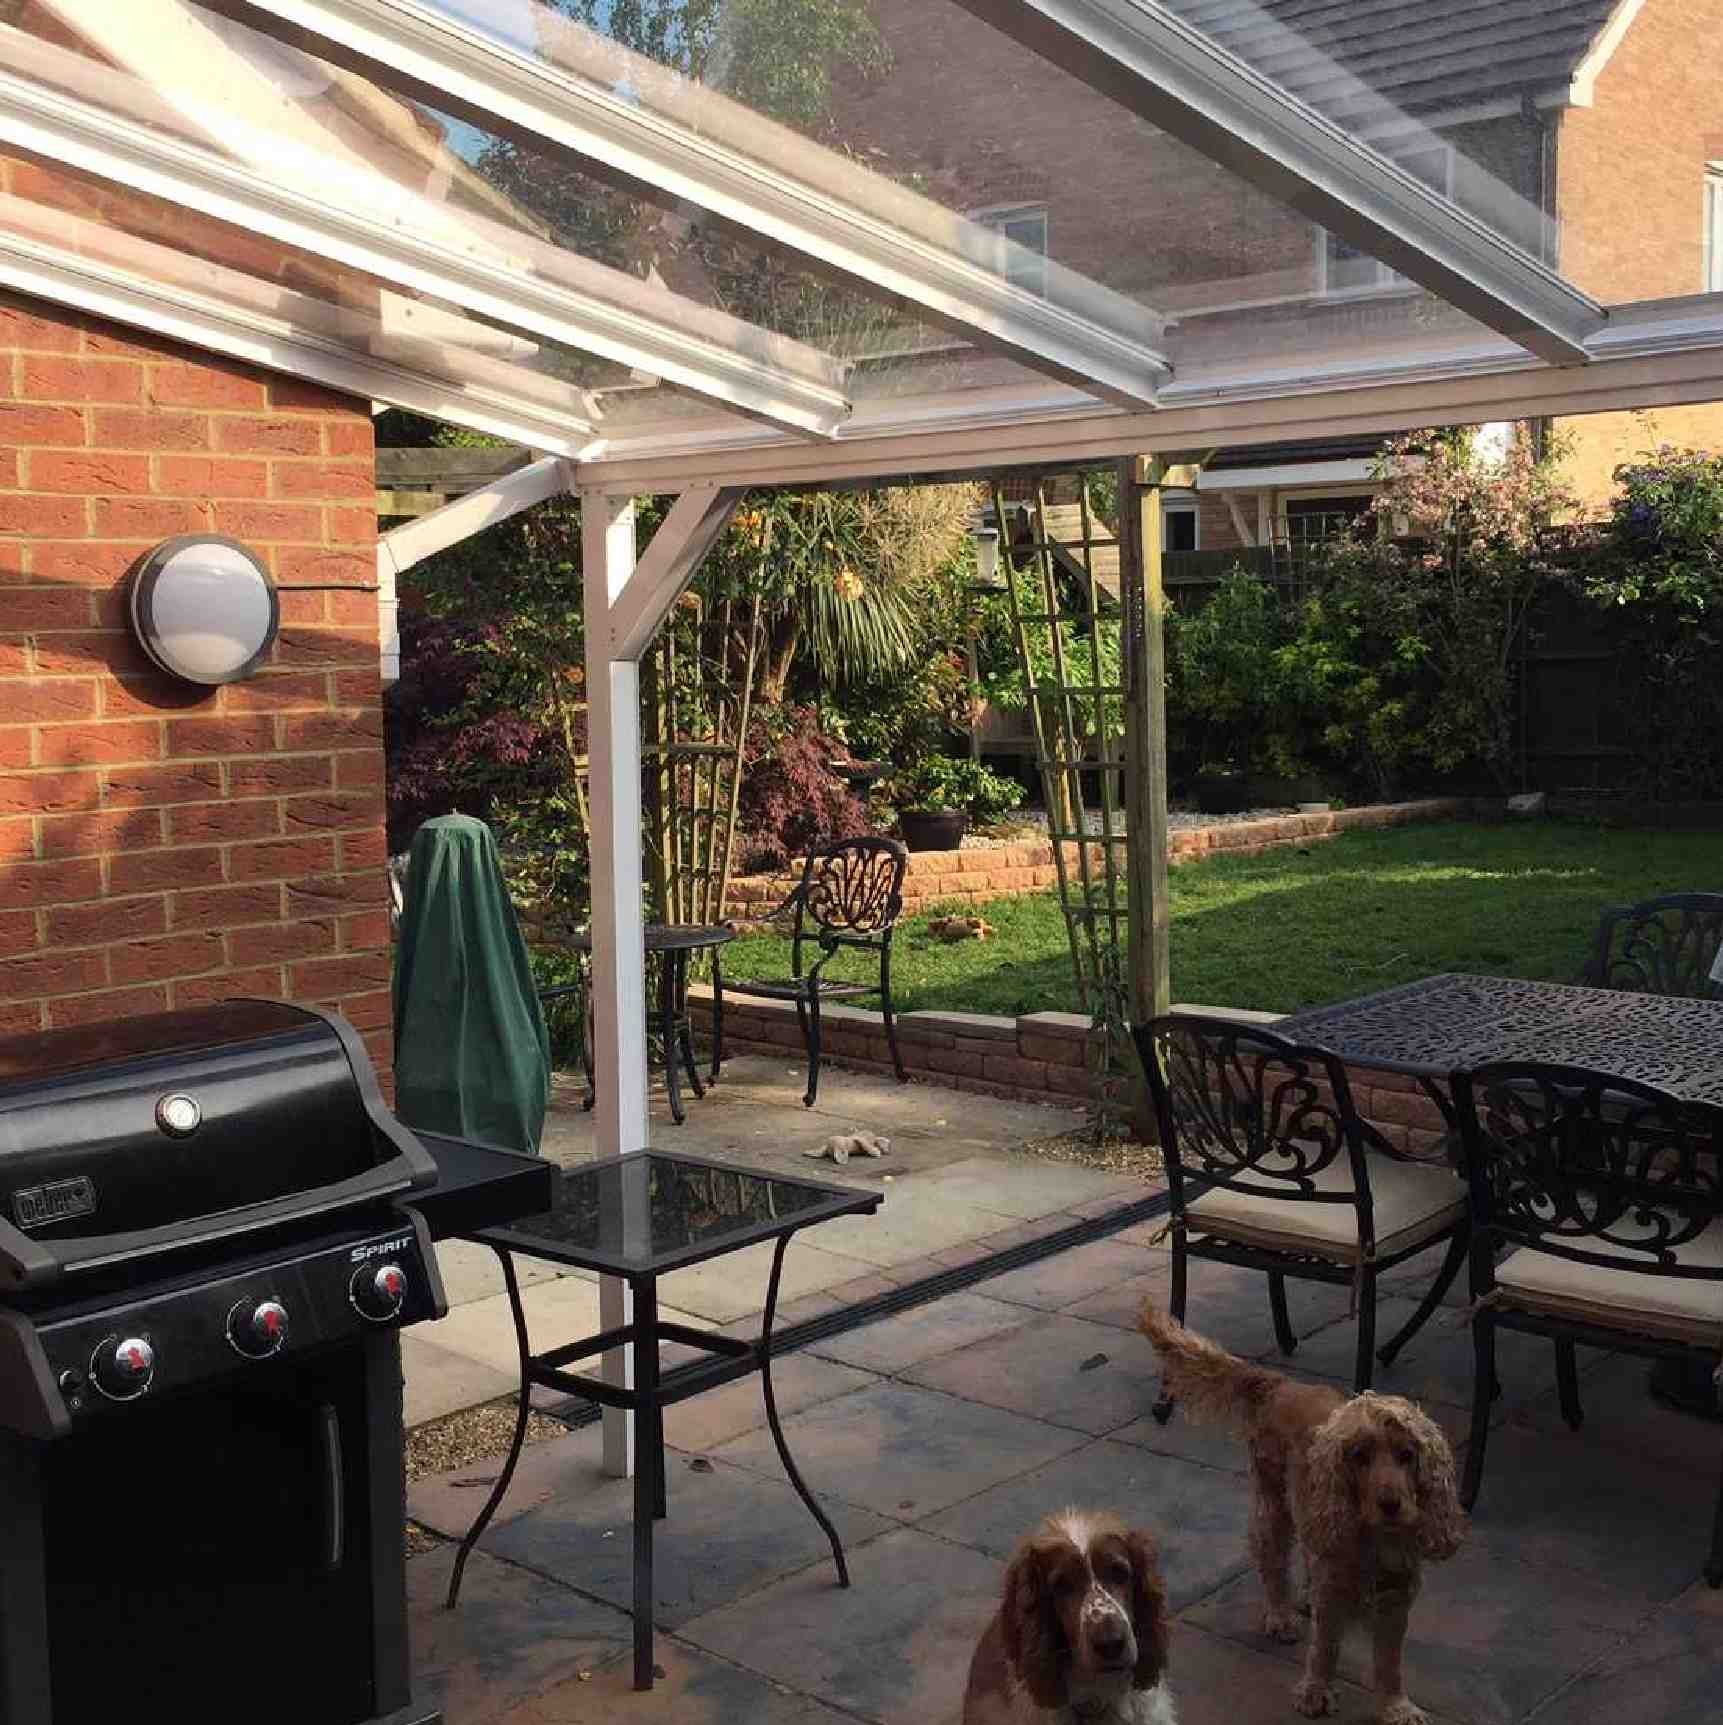 Omega Verandah with 16mm Polycarbonate Glazing - 3.1m (W) x 1.5m (P), (2) Supporting Posts